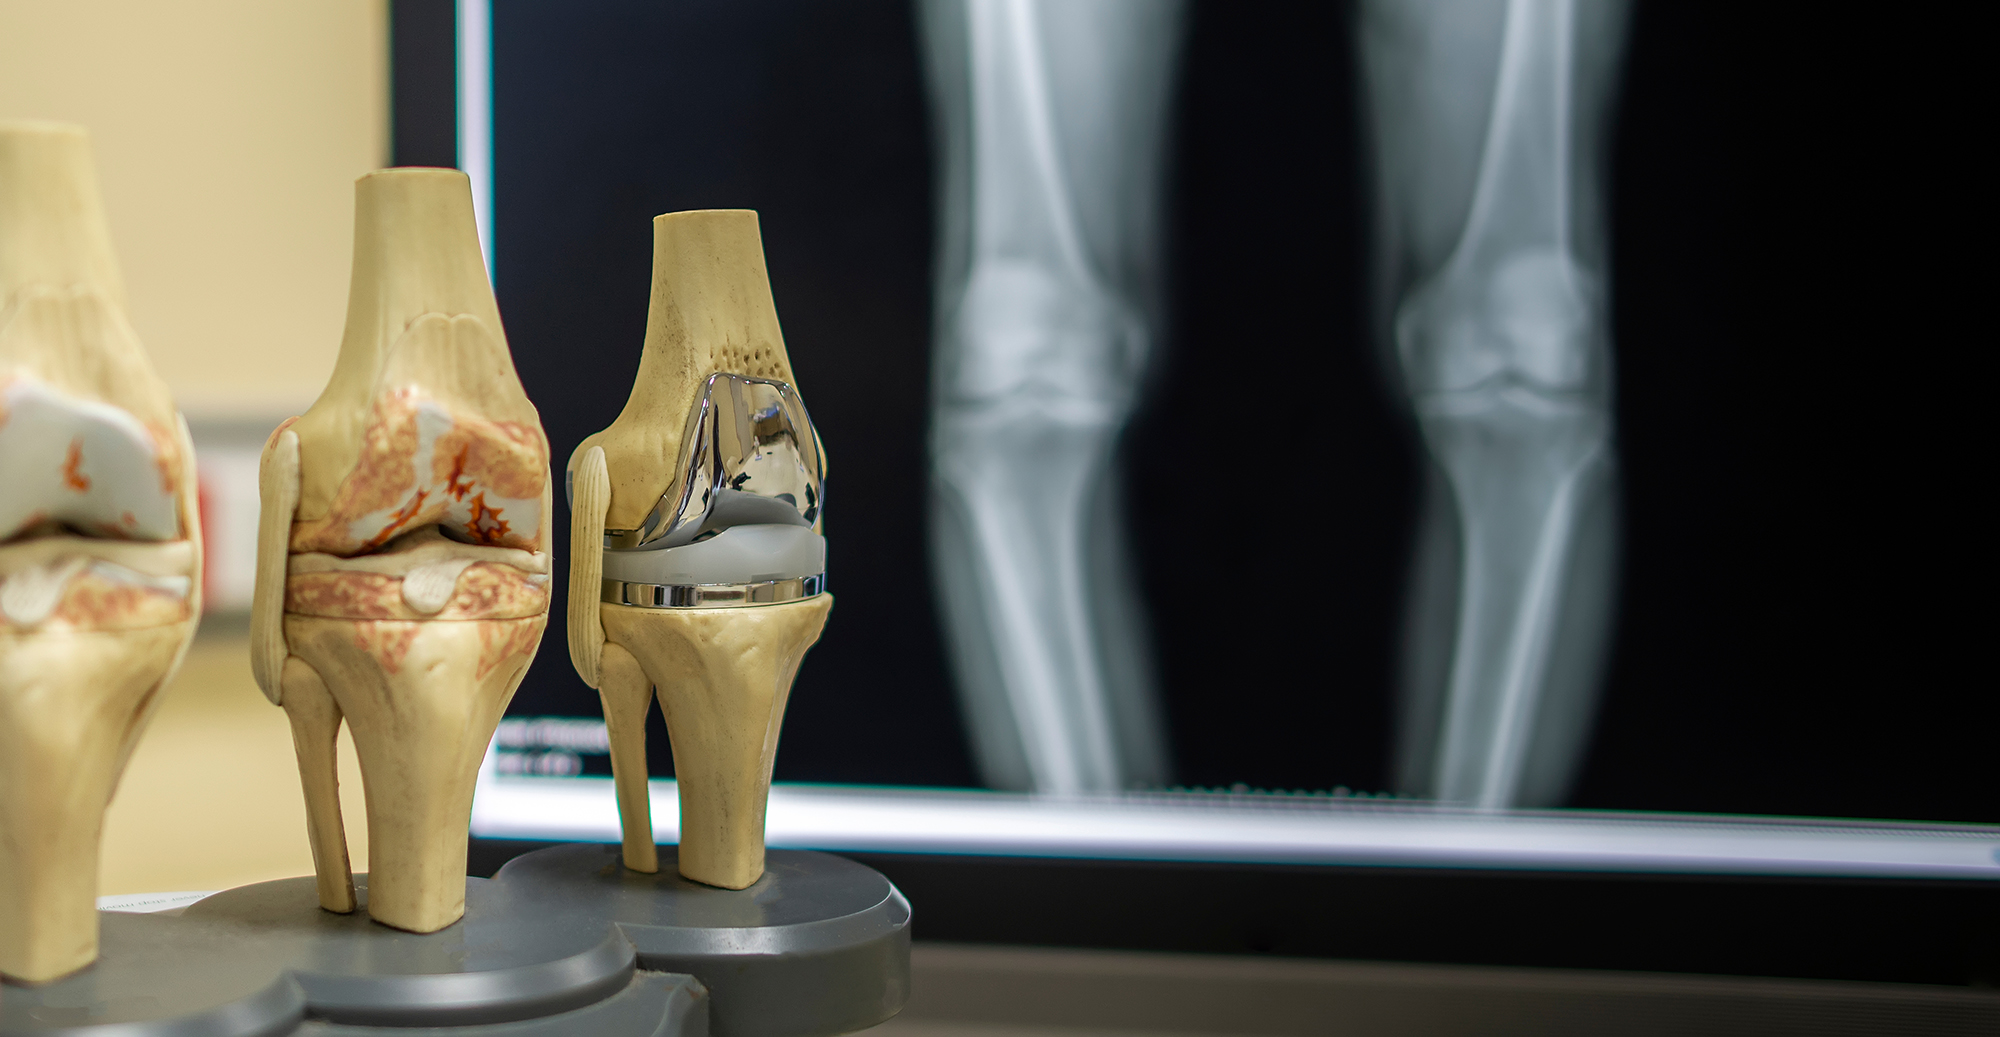 Total Knee Replacement Surgery in India